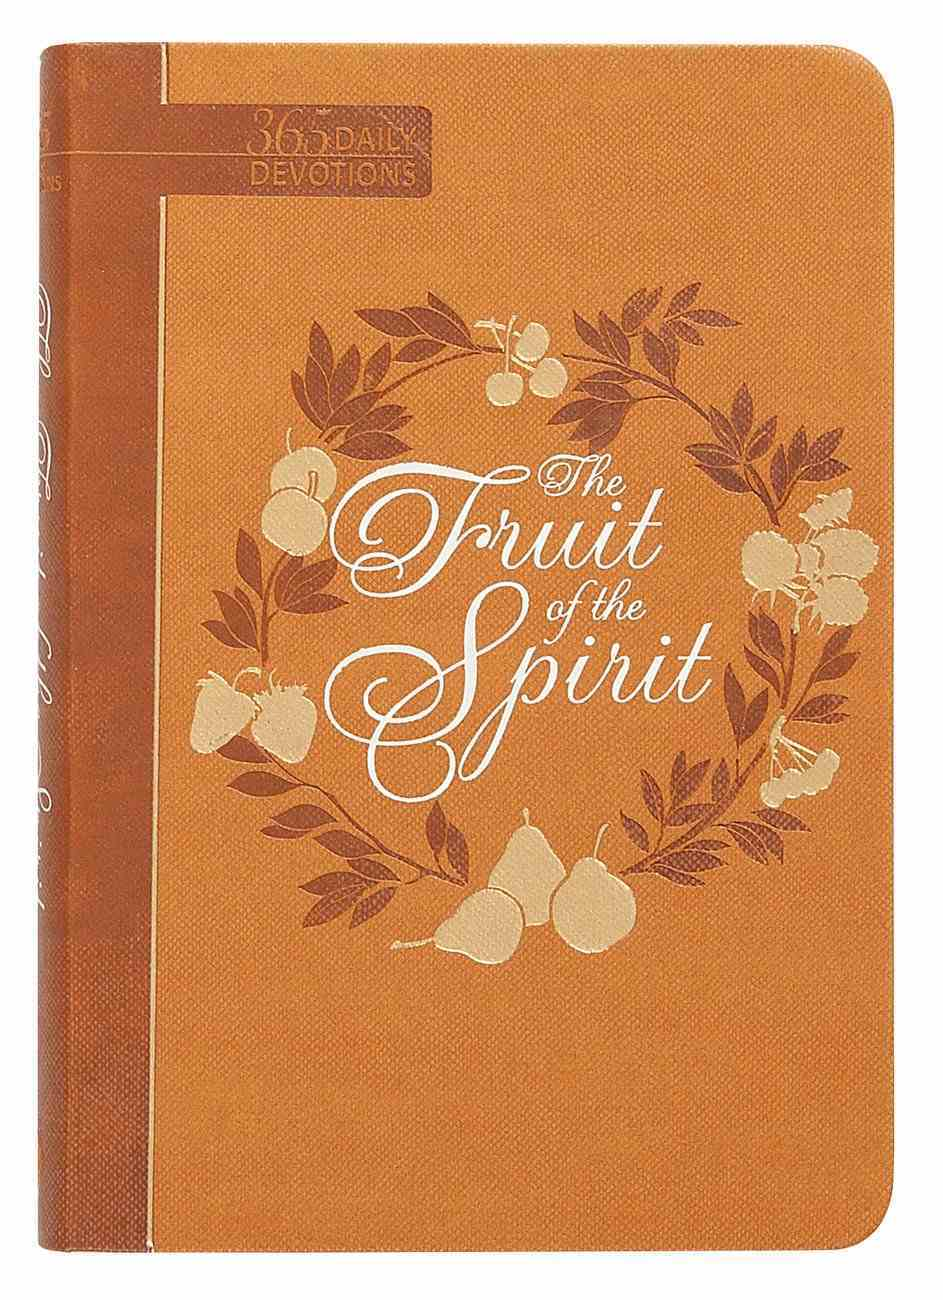 The Fruit of the Spirit (365 Daily Devotions Series) Imitation Leather